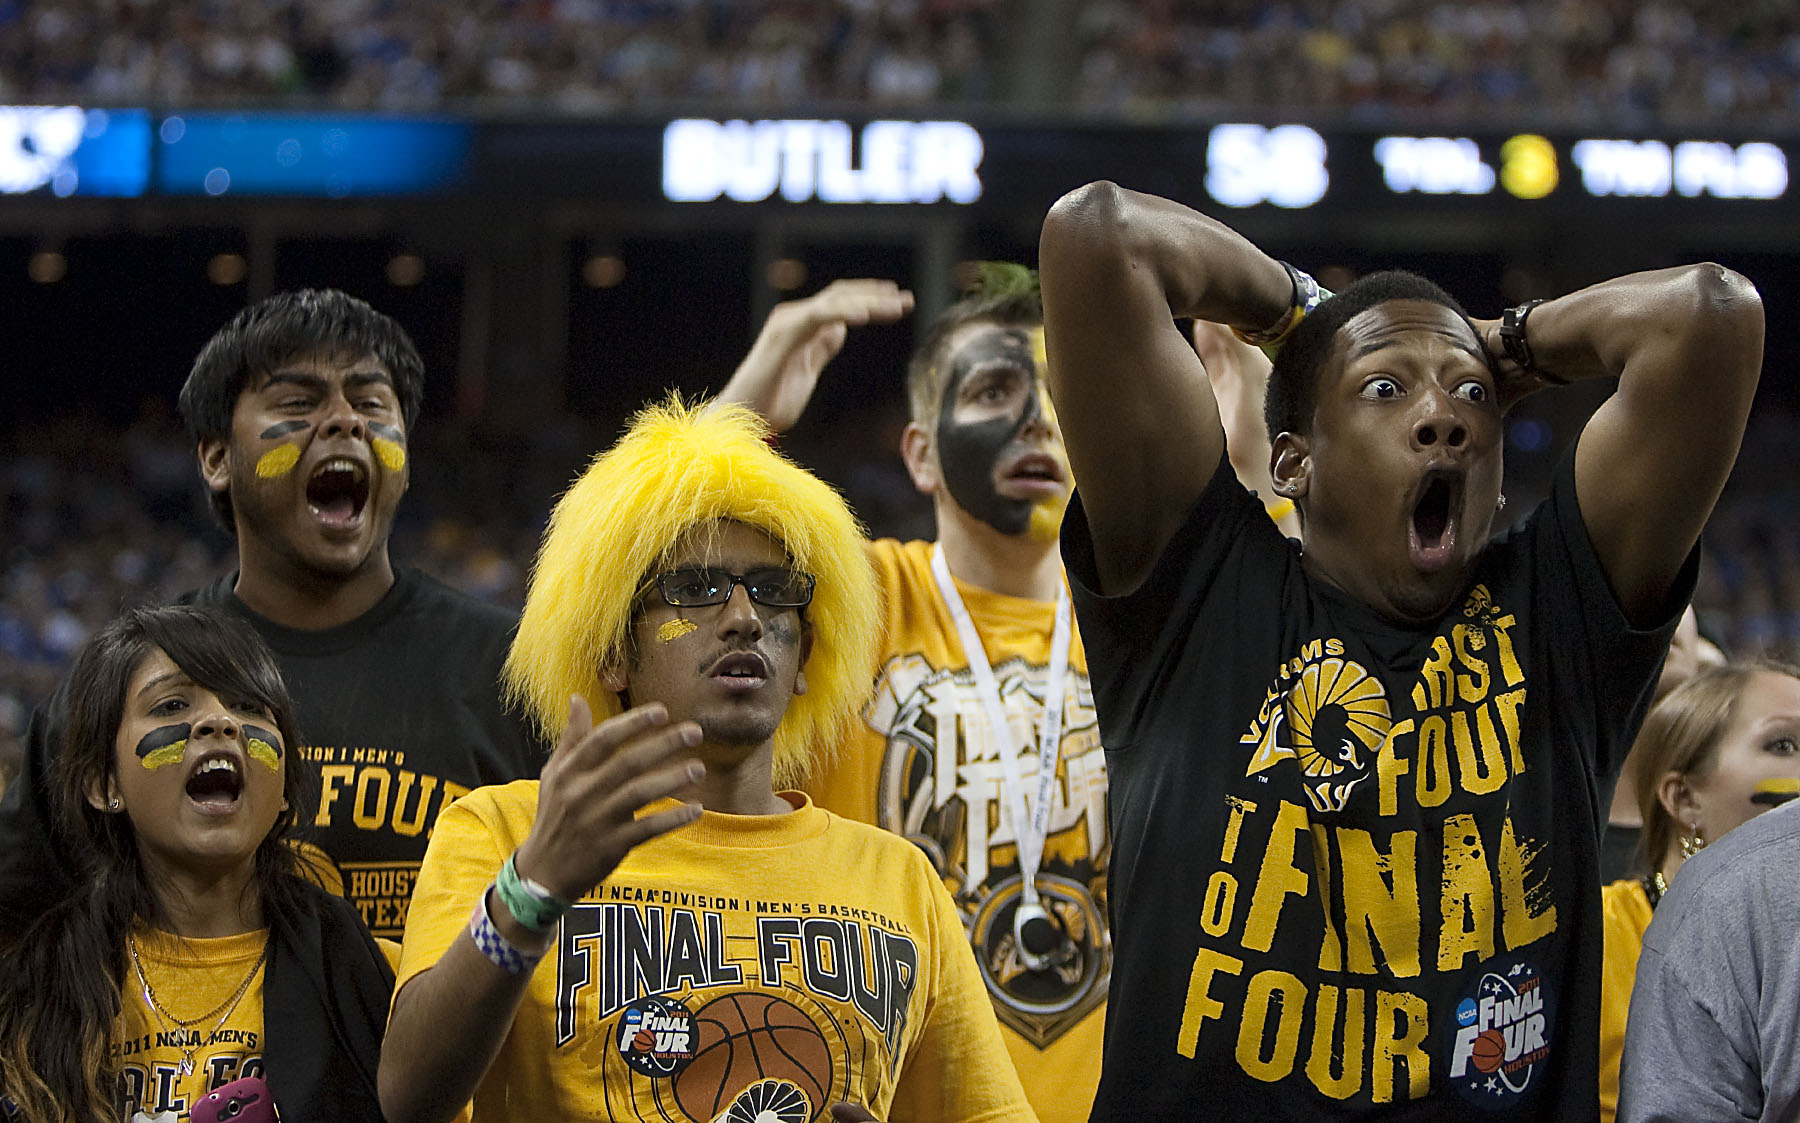 VCU basketball fans react at 2011 NCAA Tournament Final Four